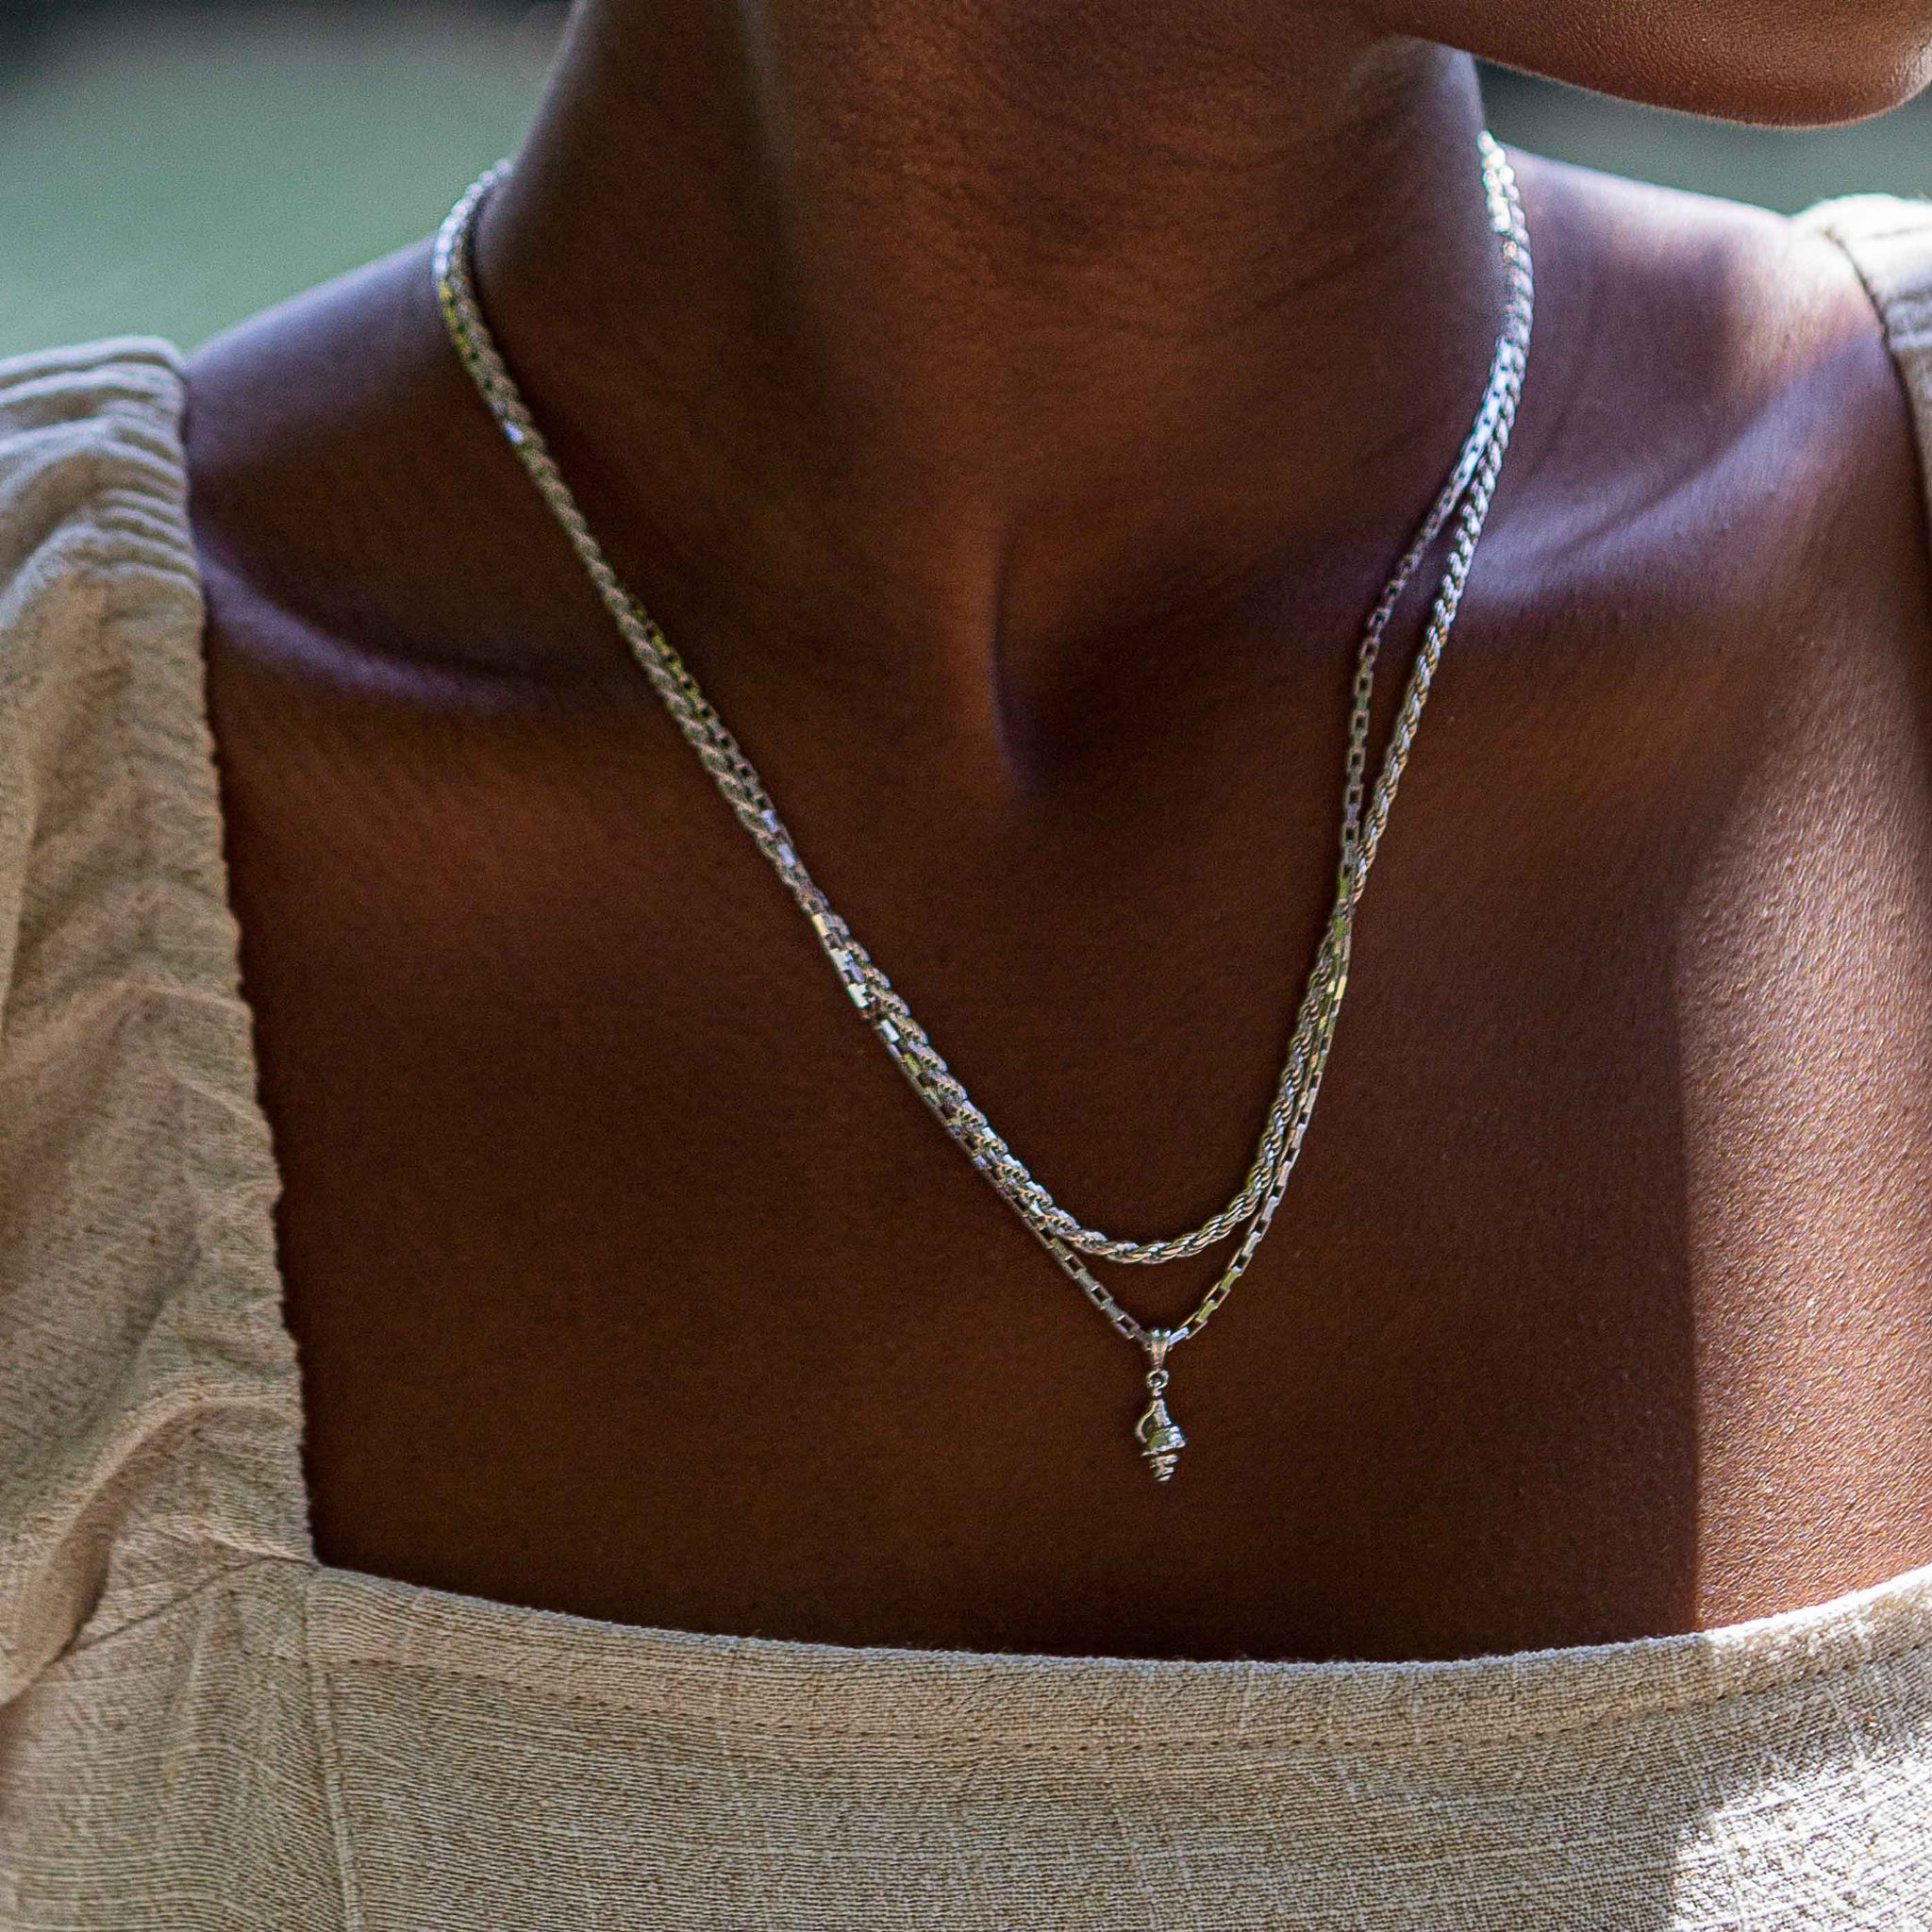 Whelk Shell Necklace Charm in Silver worn on a rectangular link chain